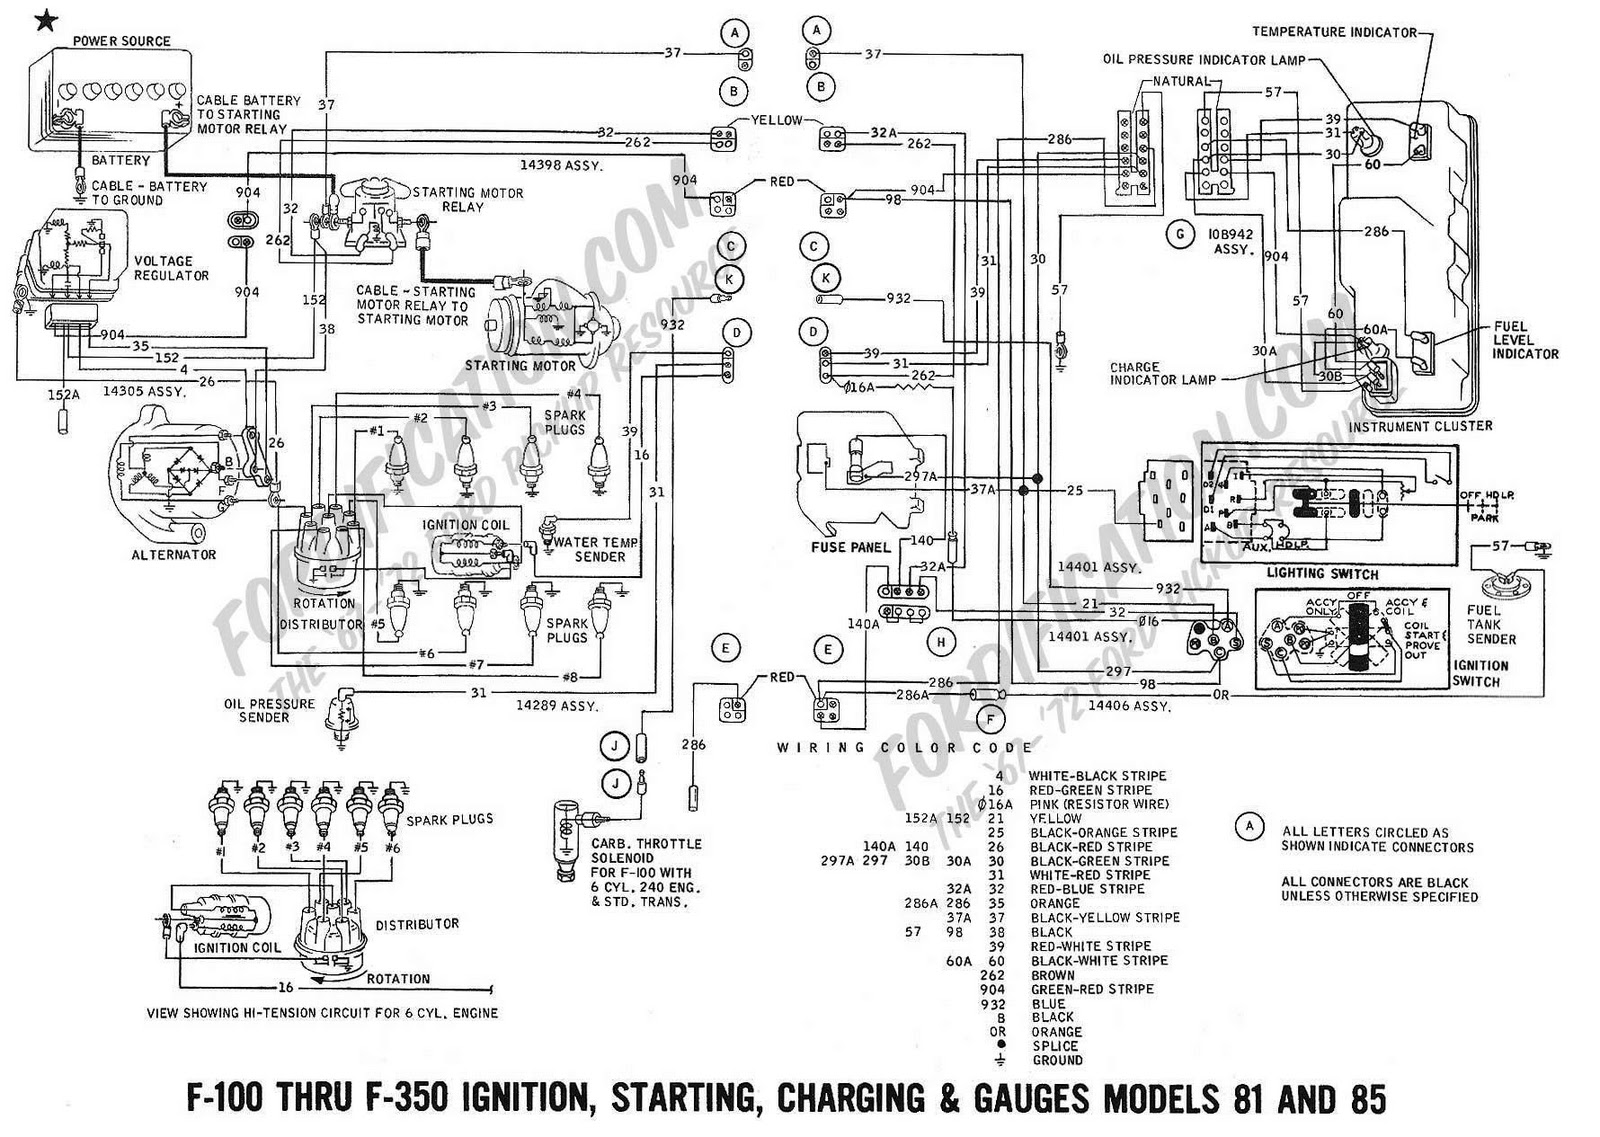 1969 Ford F100 F350 Ignition Starting on mercruiser key switch wiring diagram